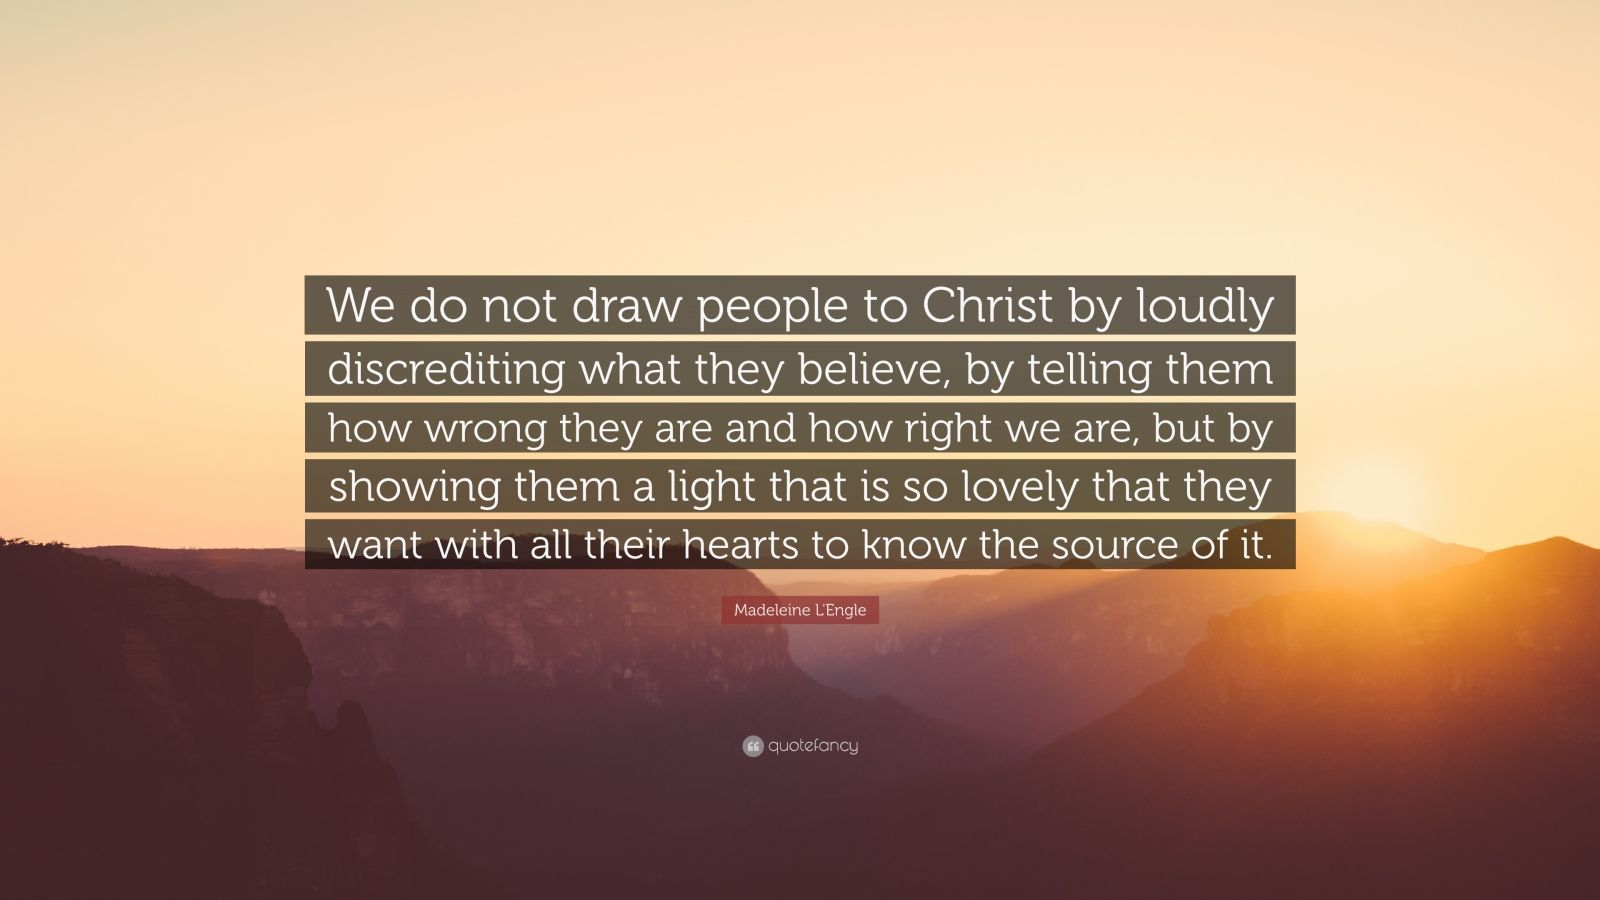 """Madeleine L'Engle Quote: """"We do not draw people to Christ by loudly discrediting what they believe, by telling them how wrong they are and how right we are, but by showing them a light that is so lovely that they want with all their hearts to know the source of it."""""""